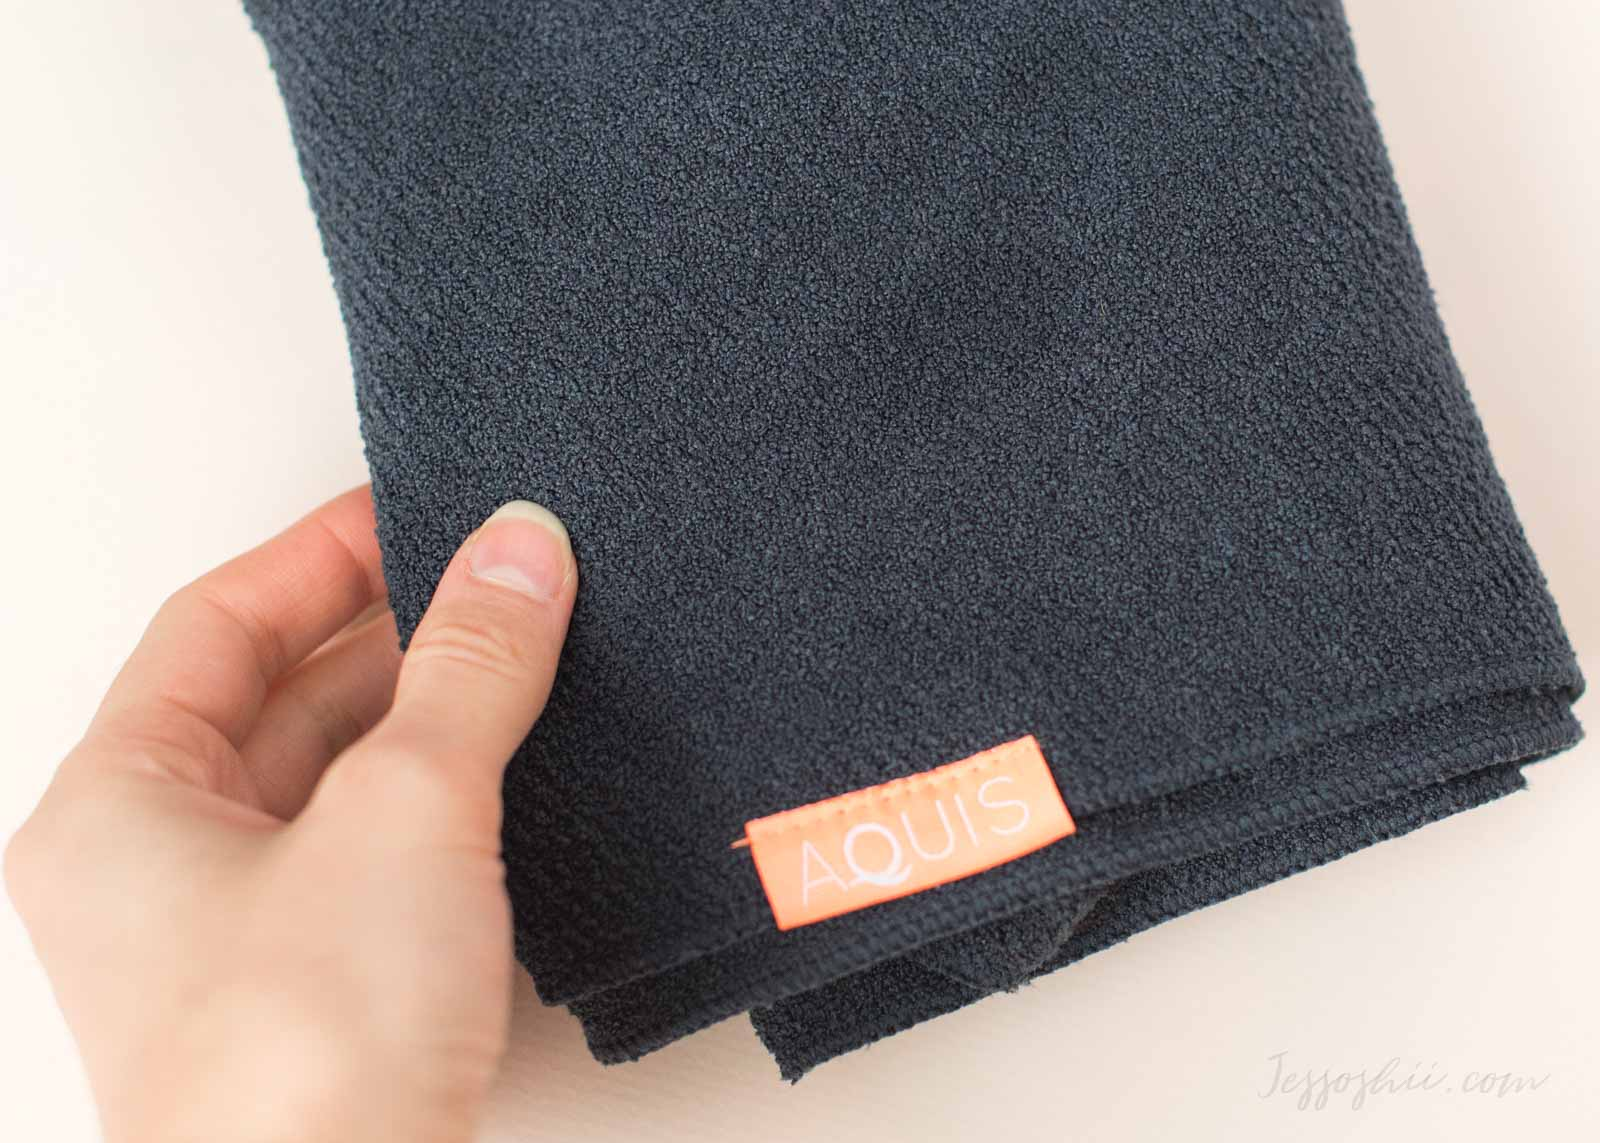 Aquis Lisse Luxe Hair Towel review, how to 4